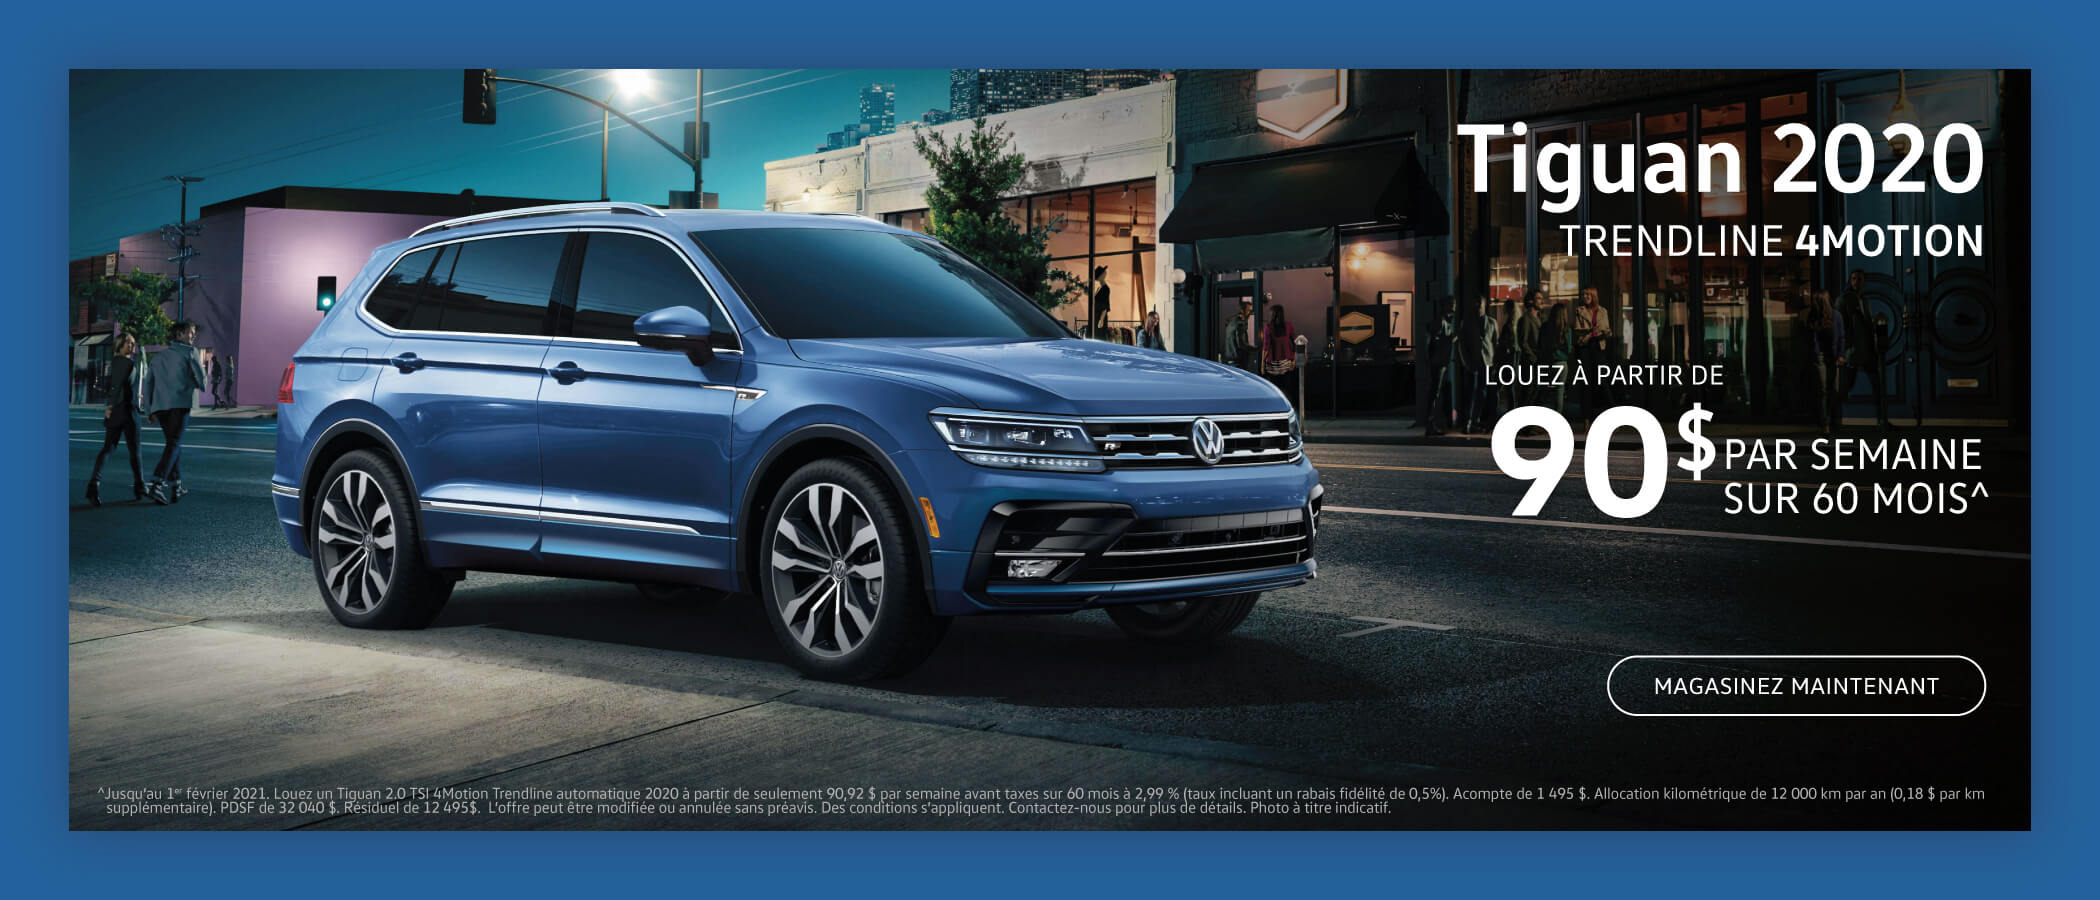 Jan Dvw Tiguan Slider 2100x900